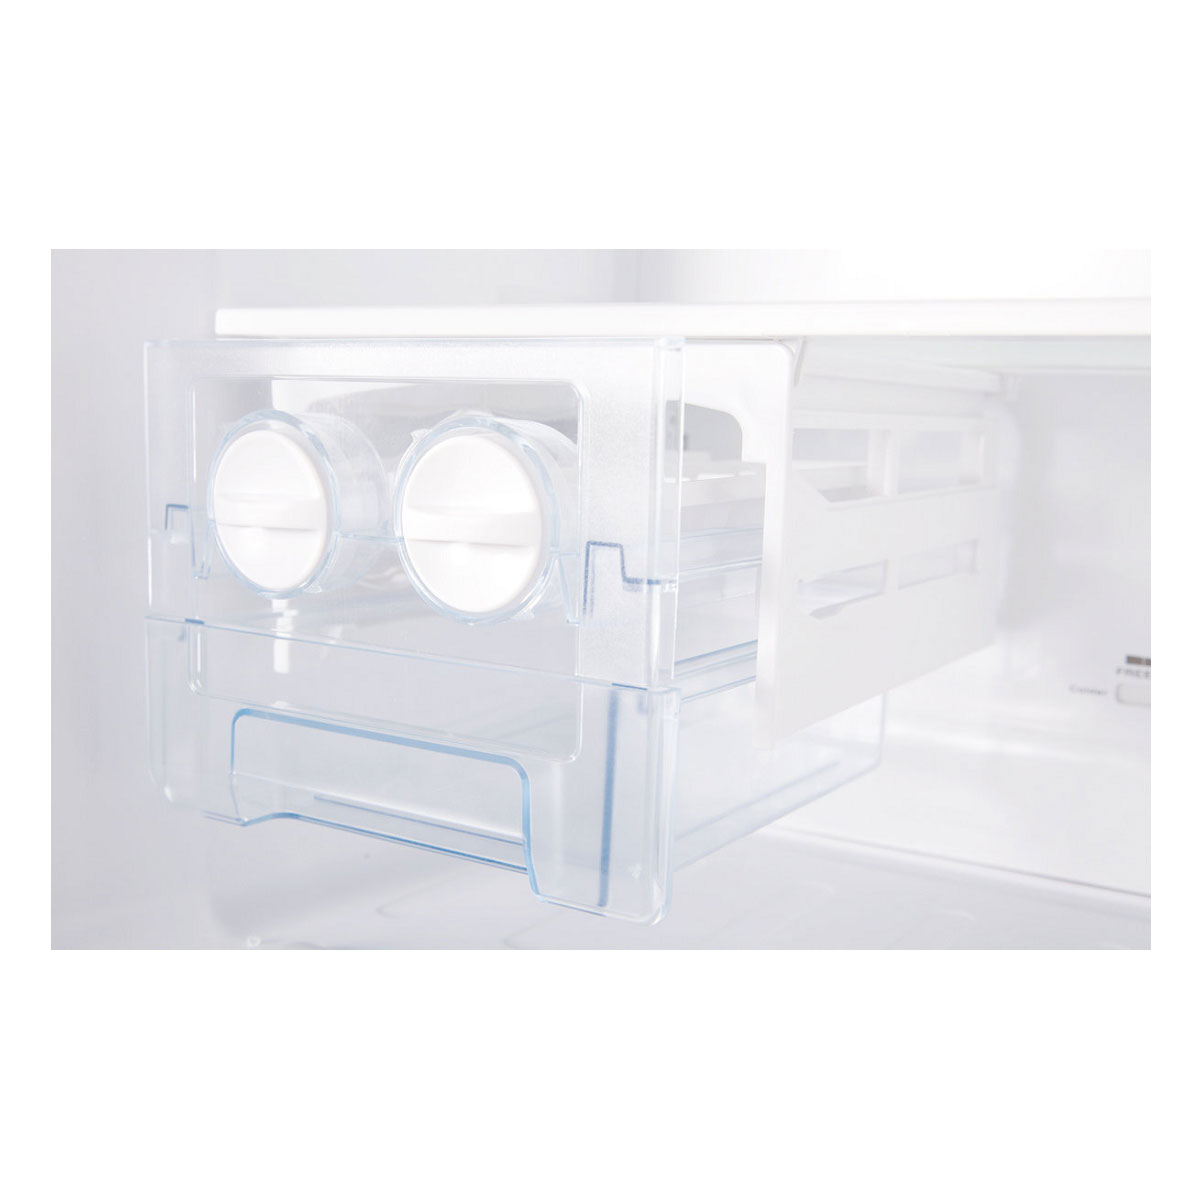 Hisense HR6TFF230 230Litres Top Mount Fridge 35254